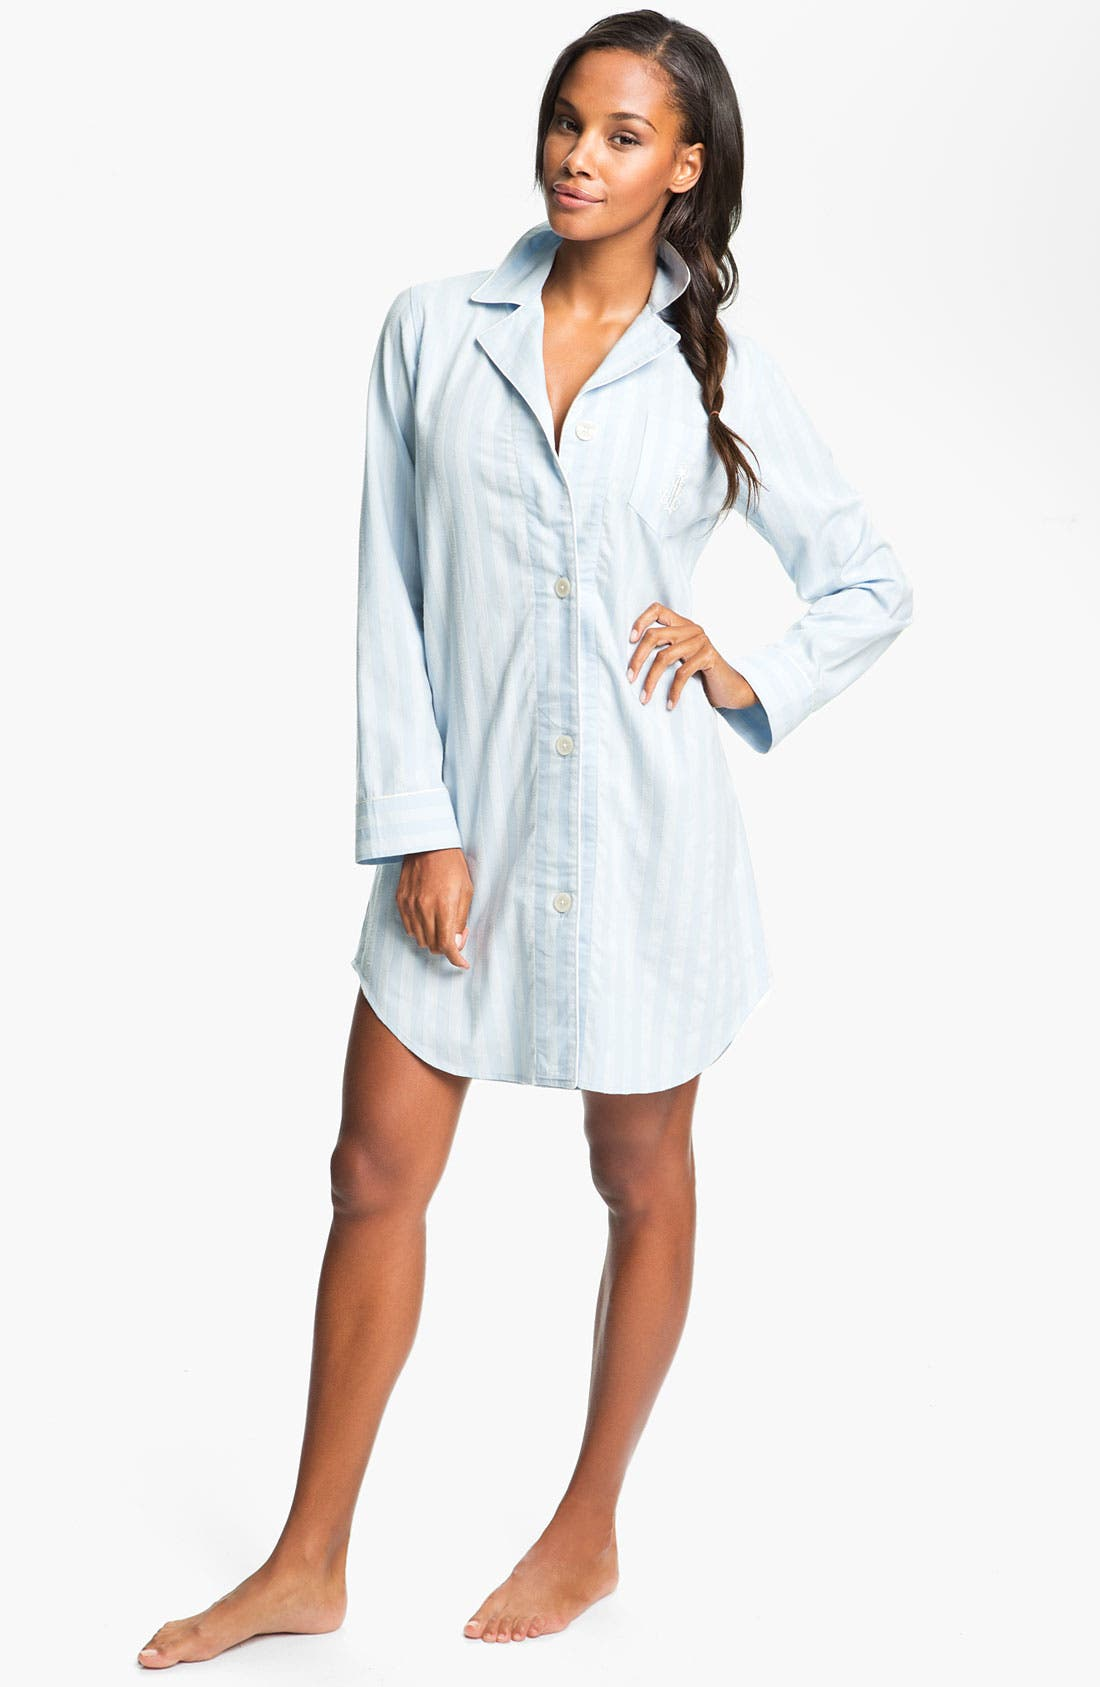 Main Image - Lauren Ralph Lauren Sleepwear Brushed Twill Nightshirt